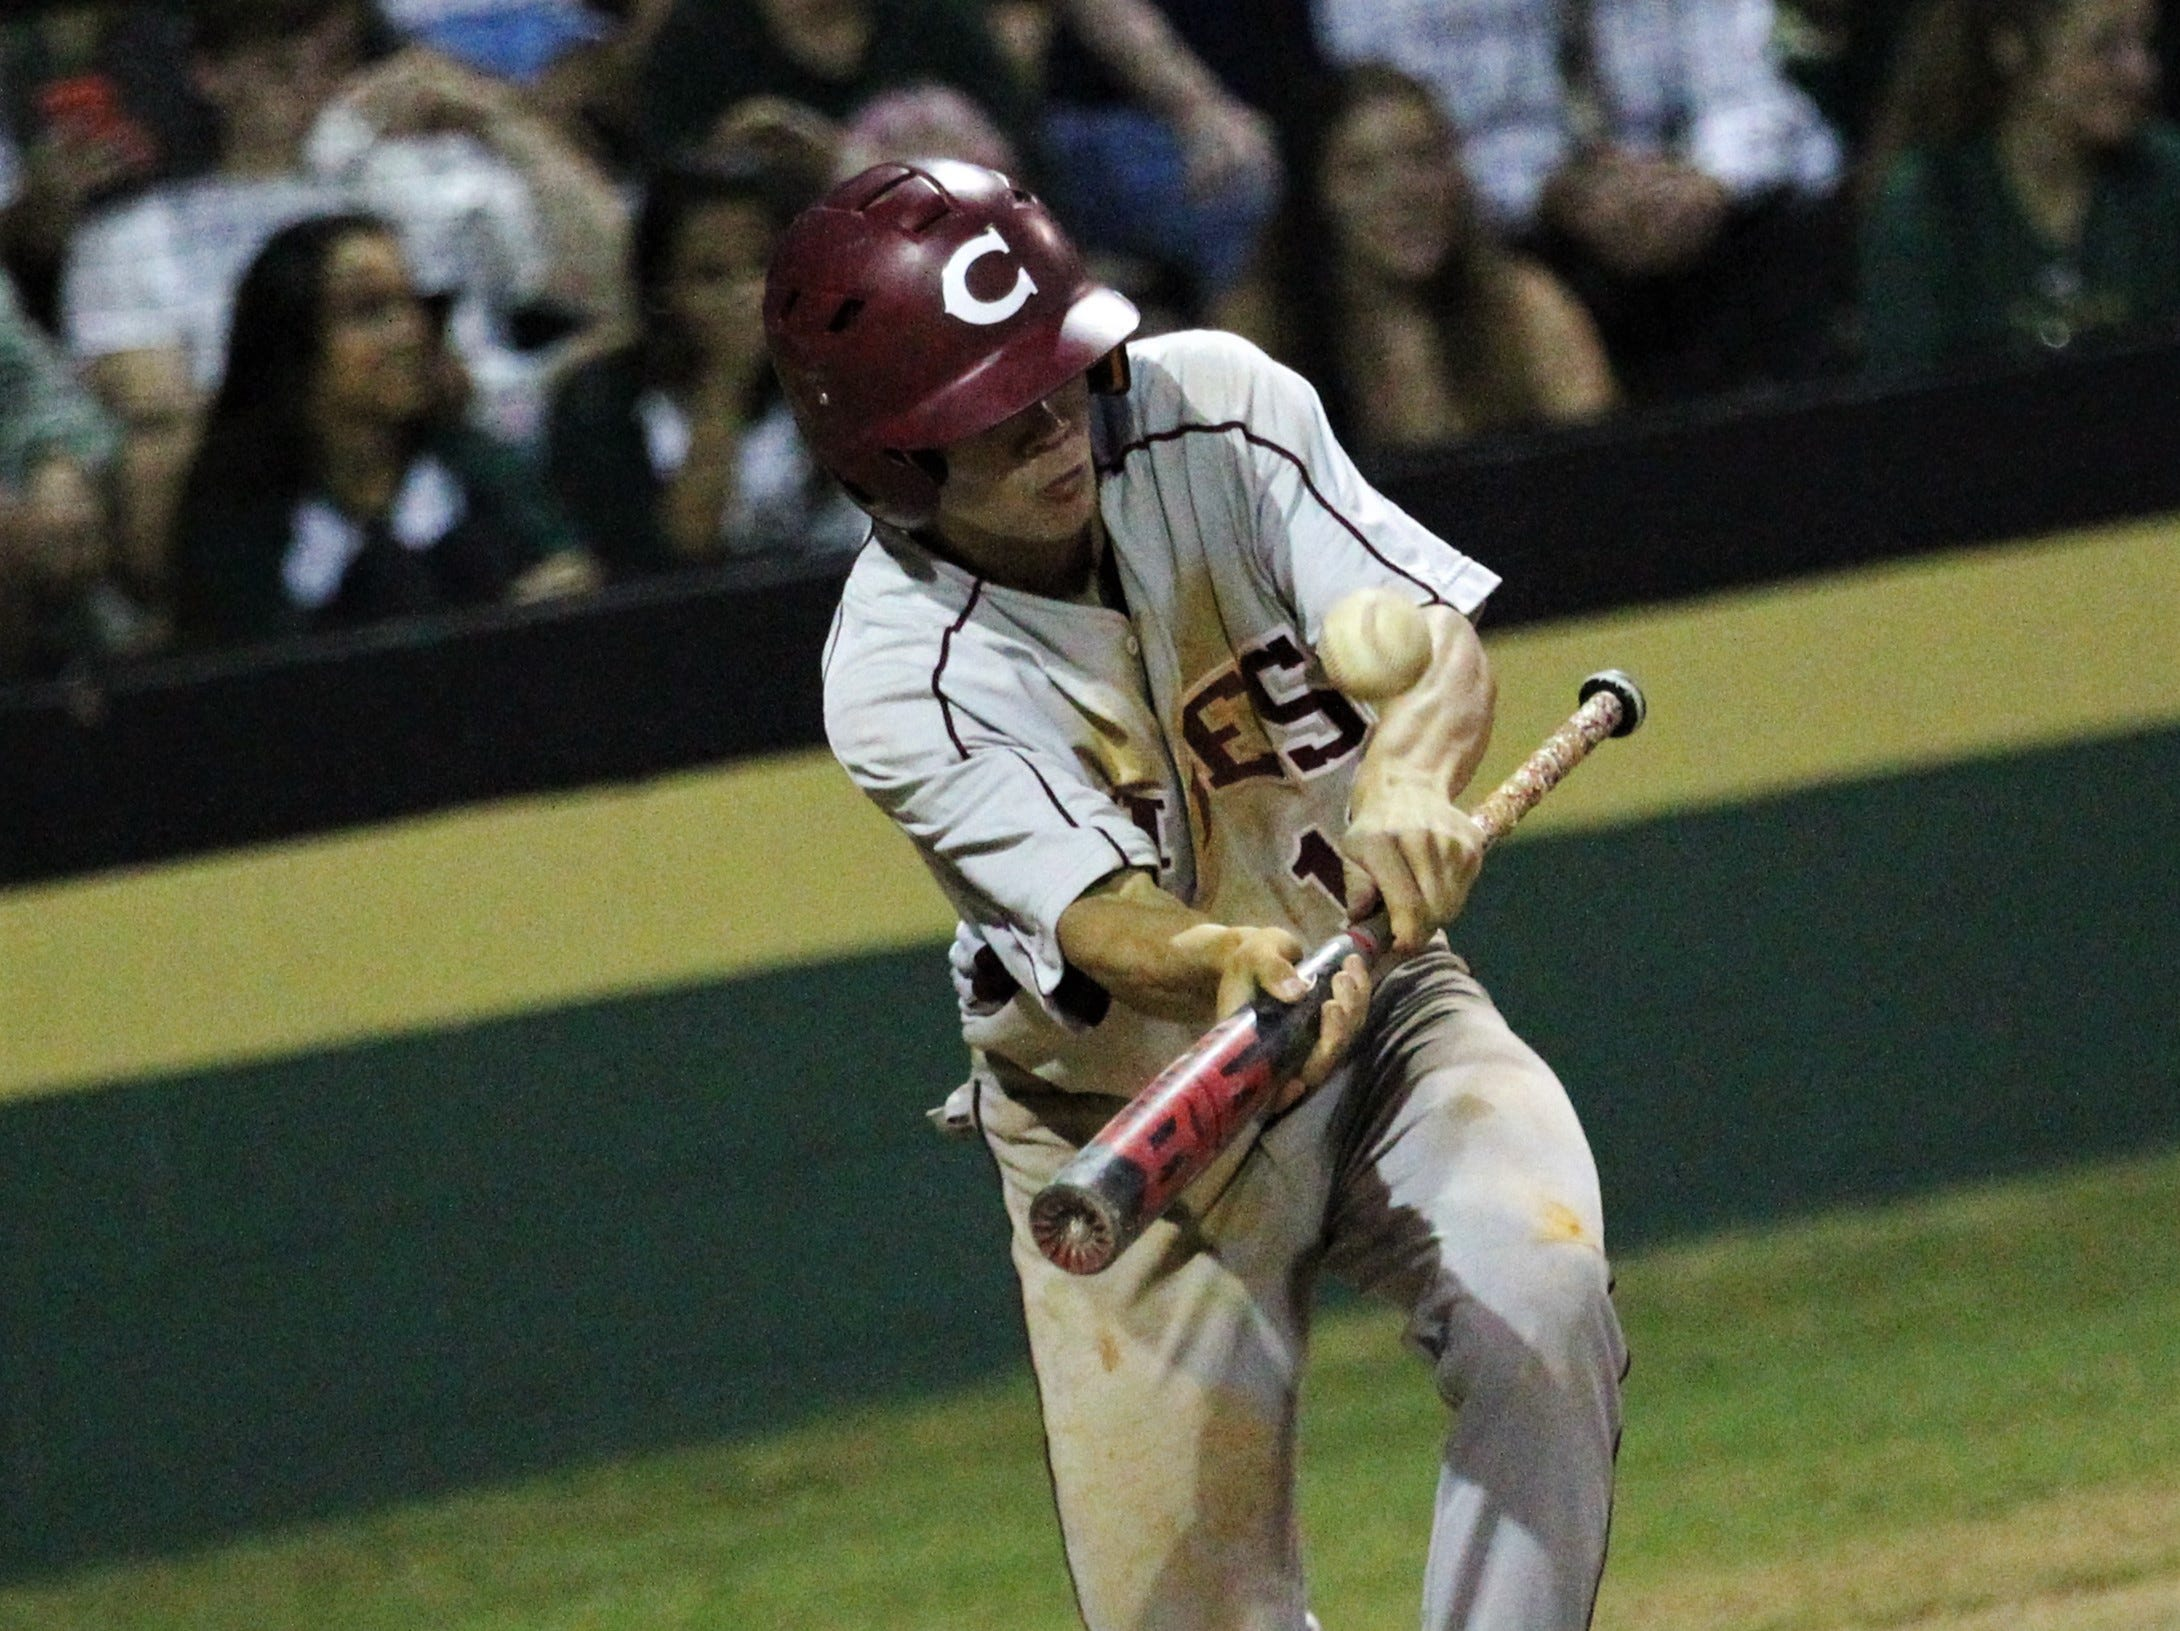 Chiles freshman Parker McDonald lays down a bunt as Lincoln baseball beat Chiles 5-4  in 10 innings during a District 2-8A championship game on Thursday, May 9, 2019.